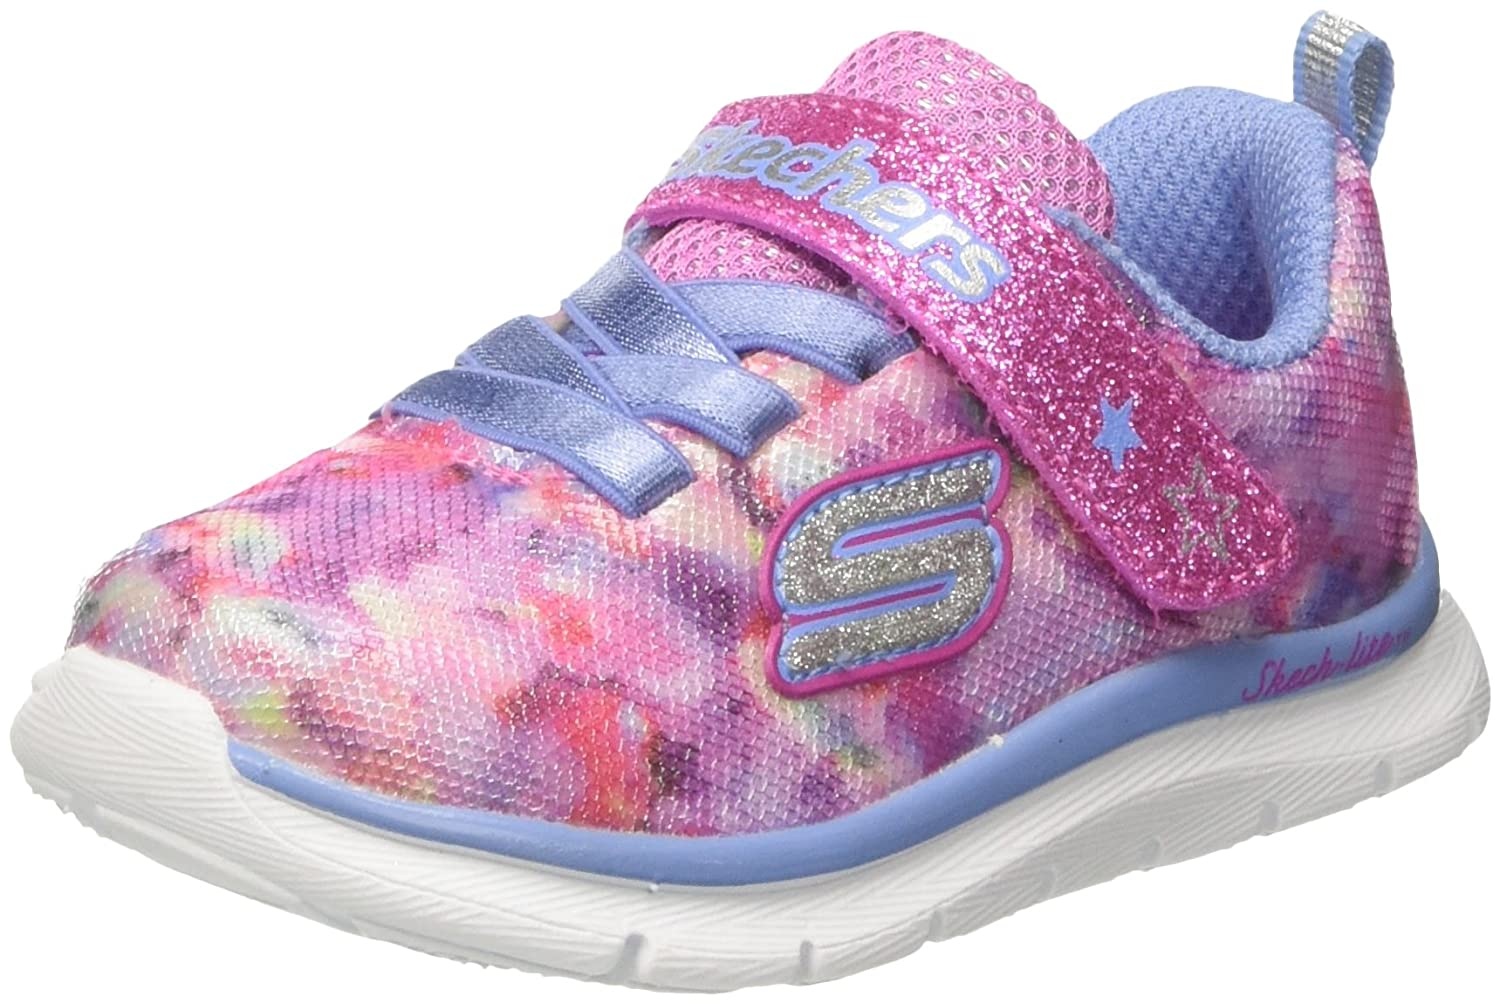 Skechers 82071n, Baskets bébé Fille